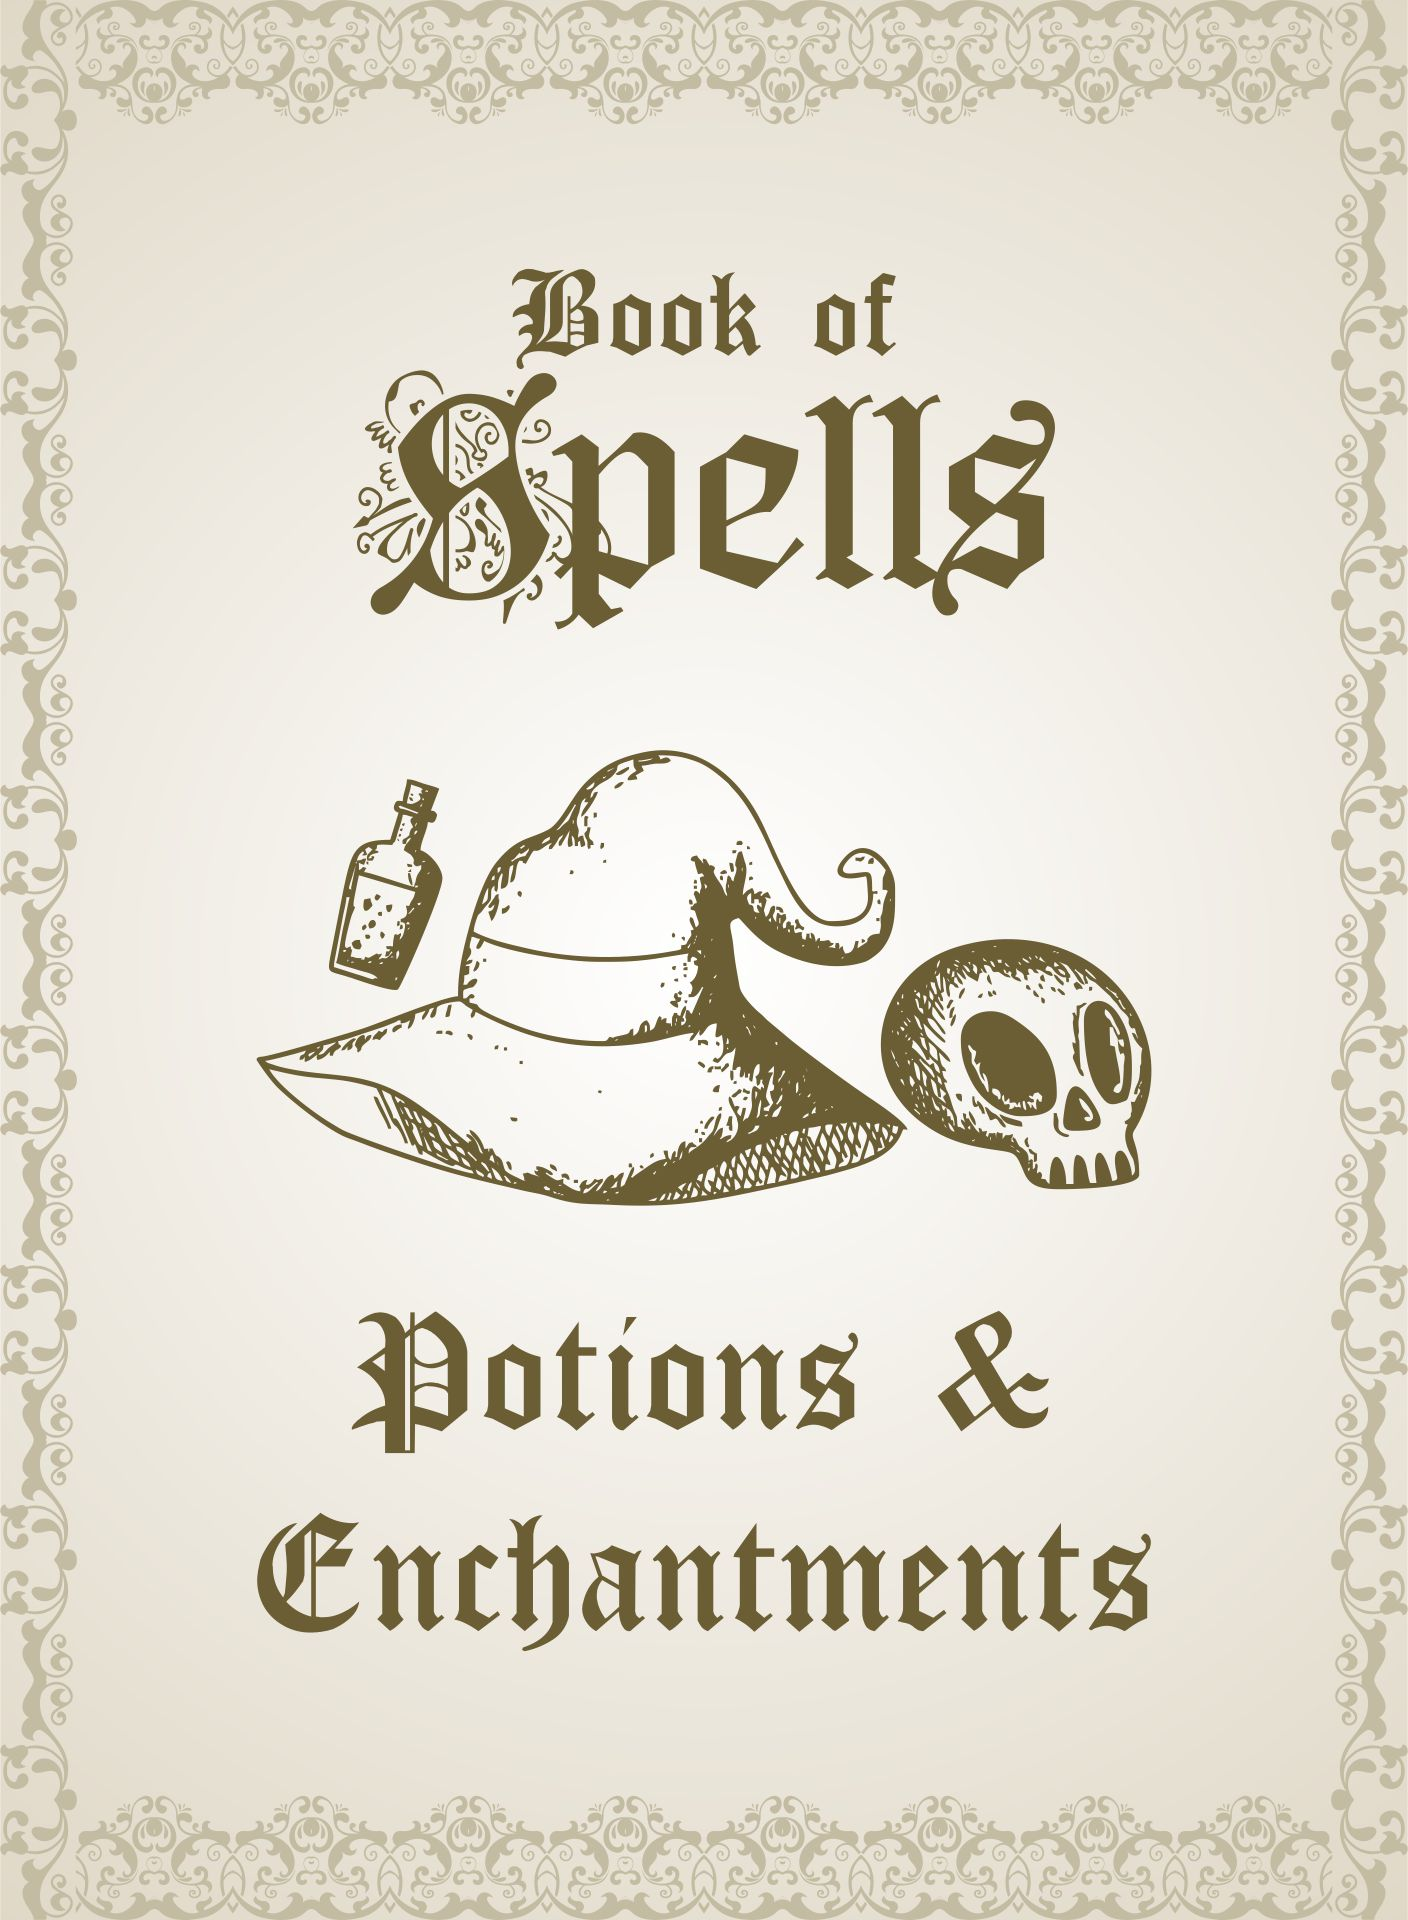 Printable Spell Book Cover